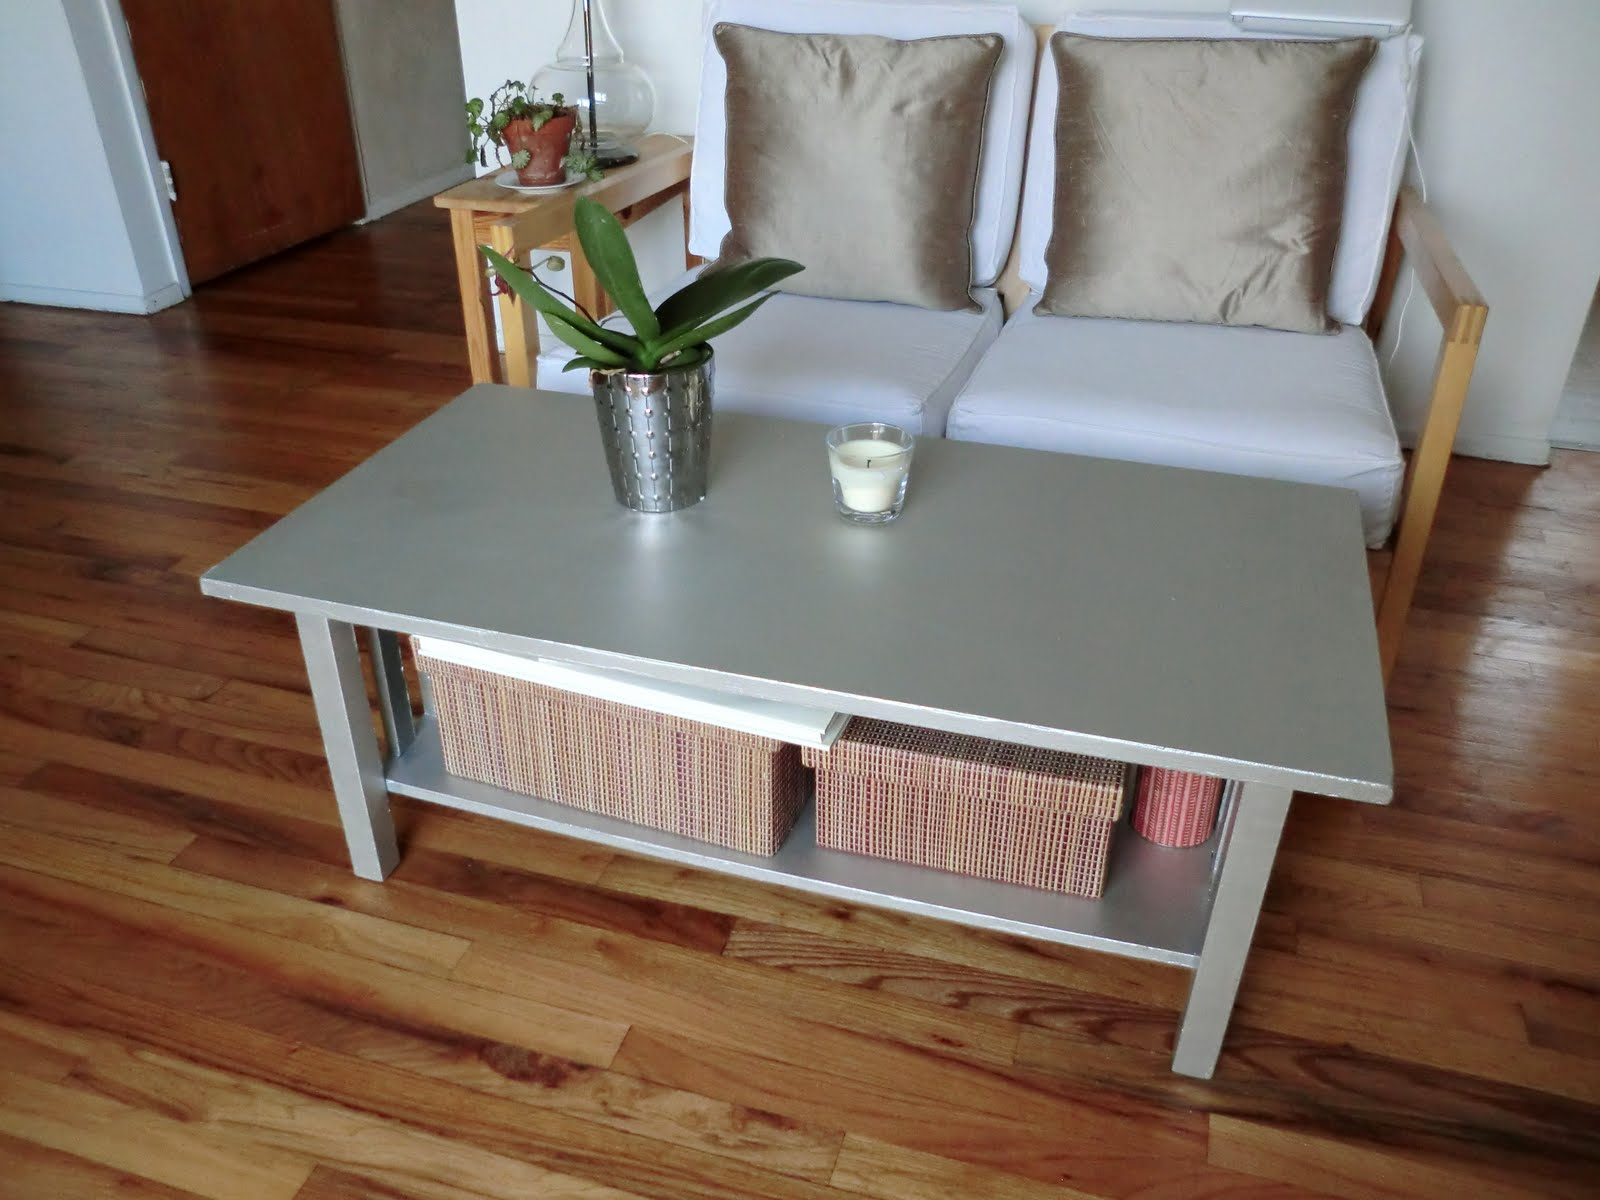 Table Painting Designs According To Lia Diy Coffee Table Upgrade